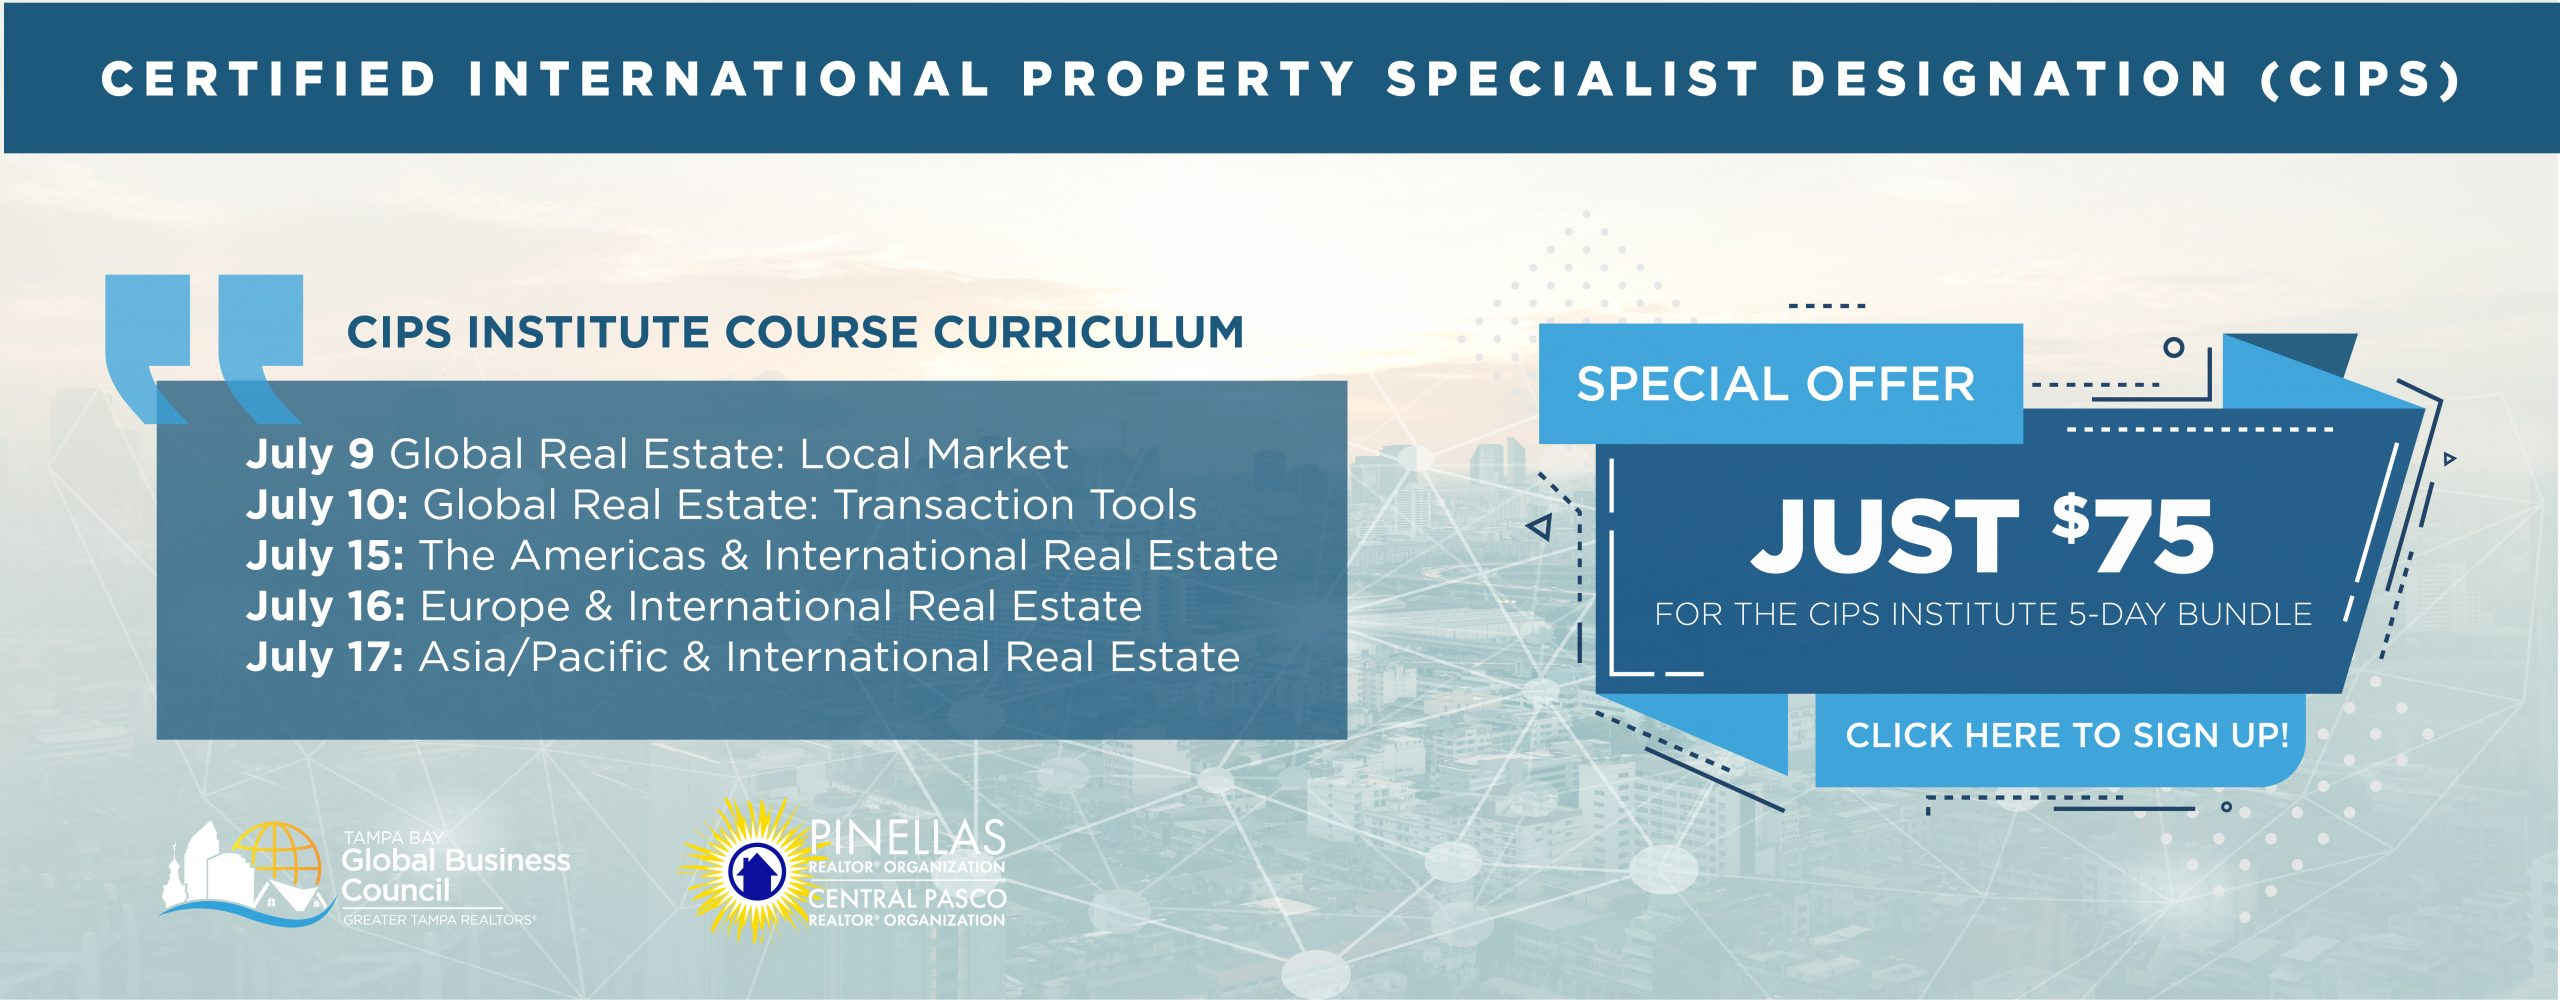 Certified International Property Specialist Designation (CIPS) Special Offer take the entire 5-day bundle for just $75! Click here to sign up.